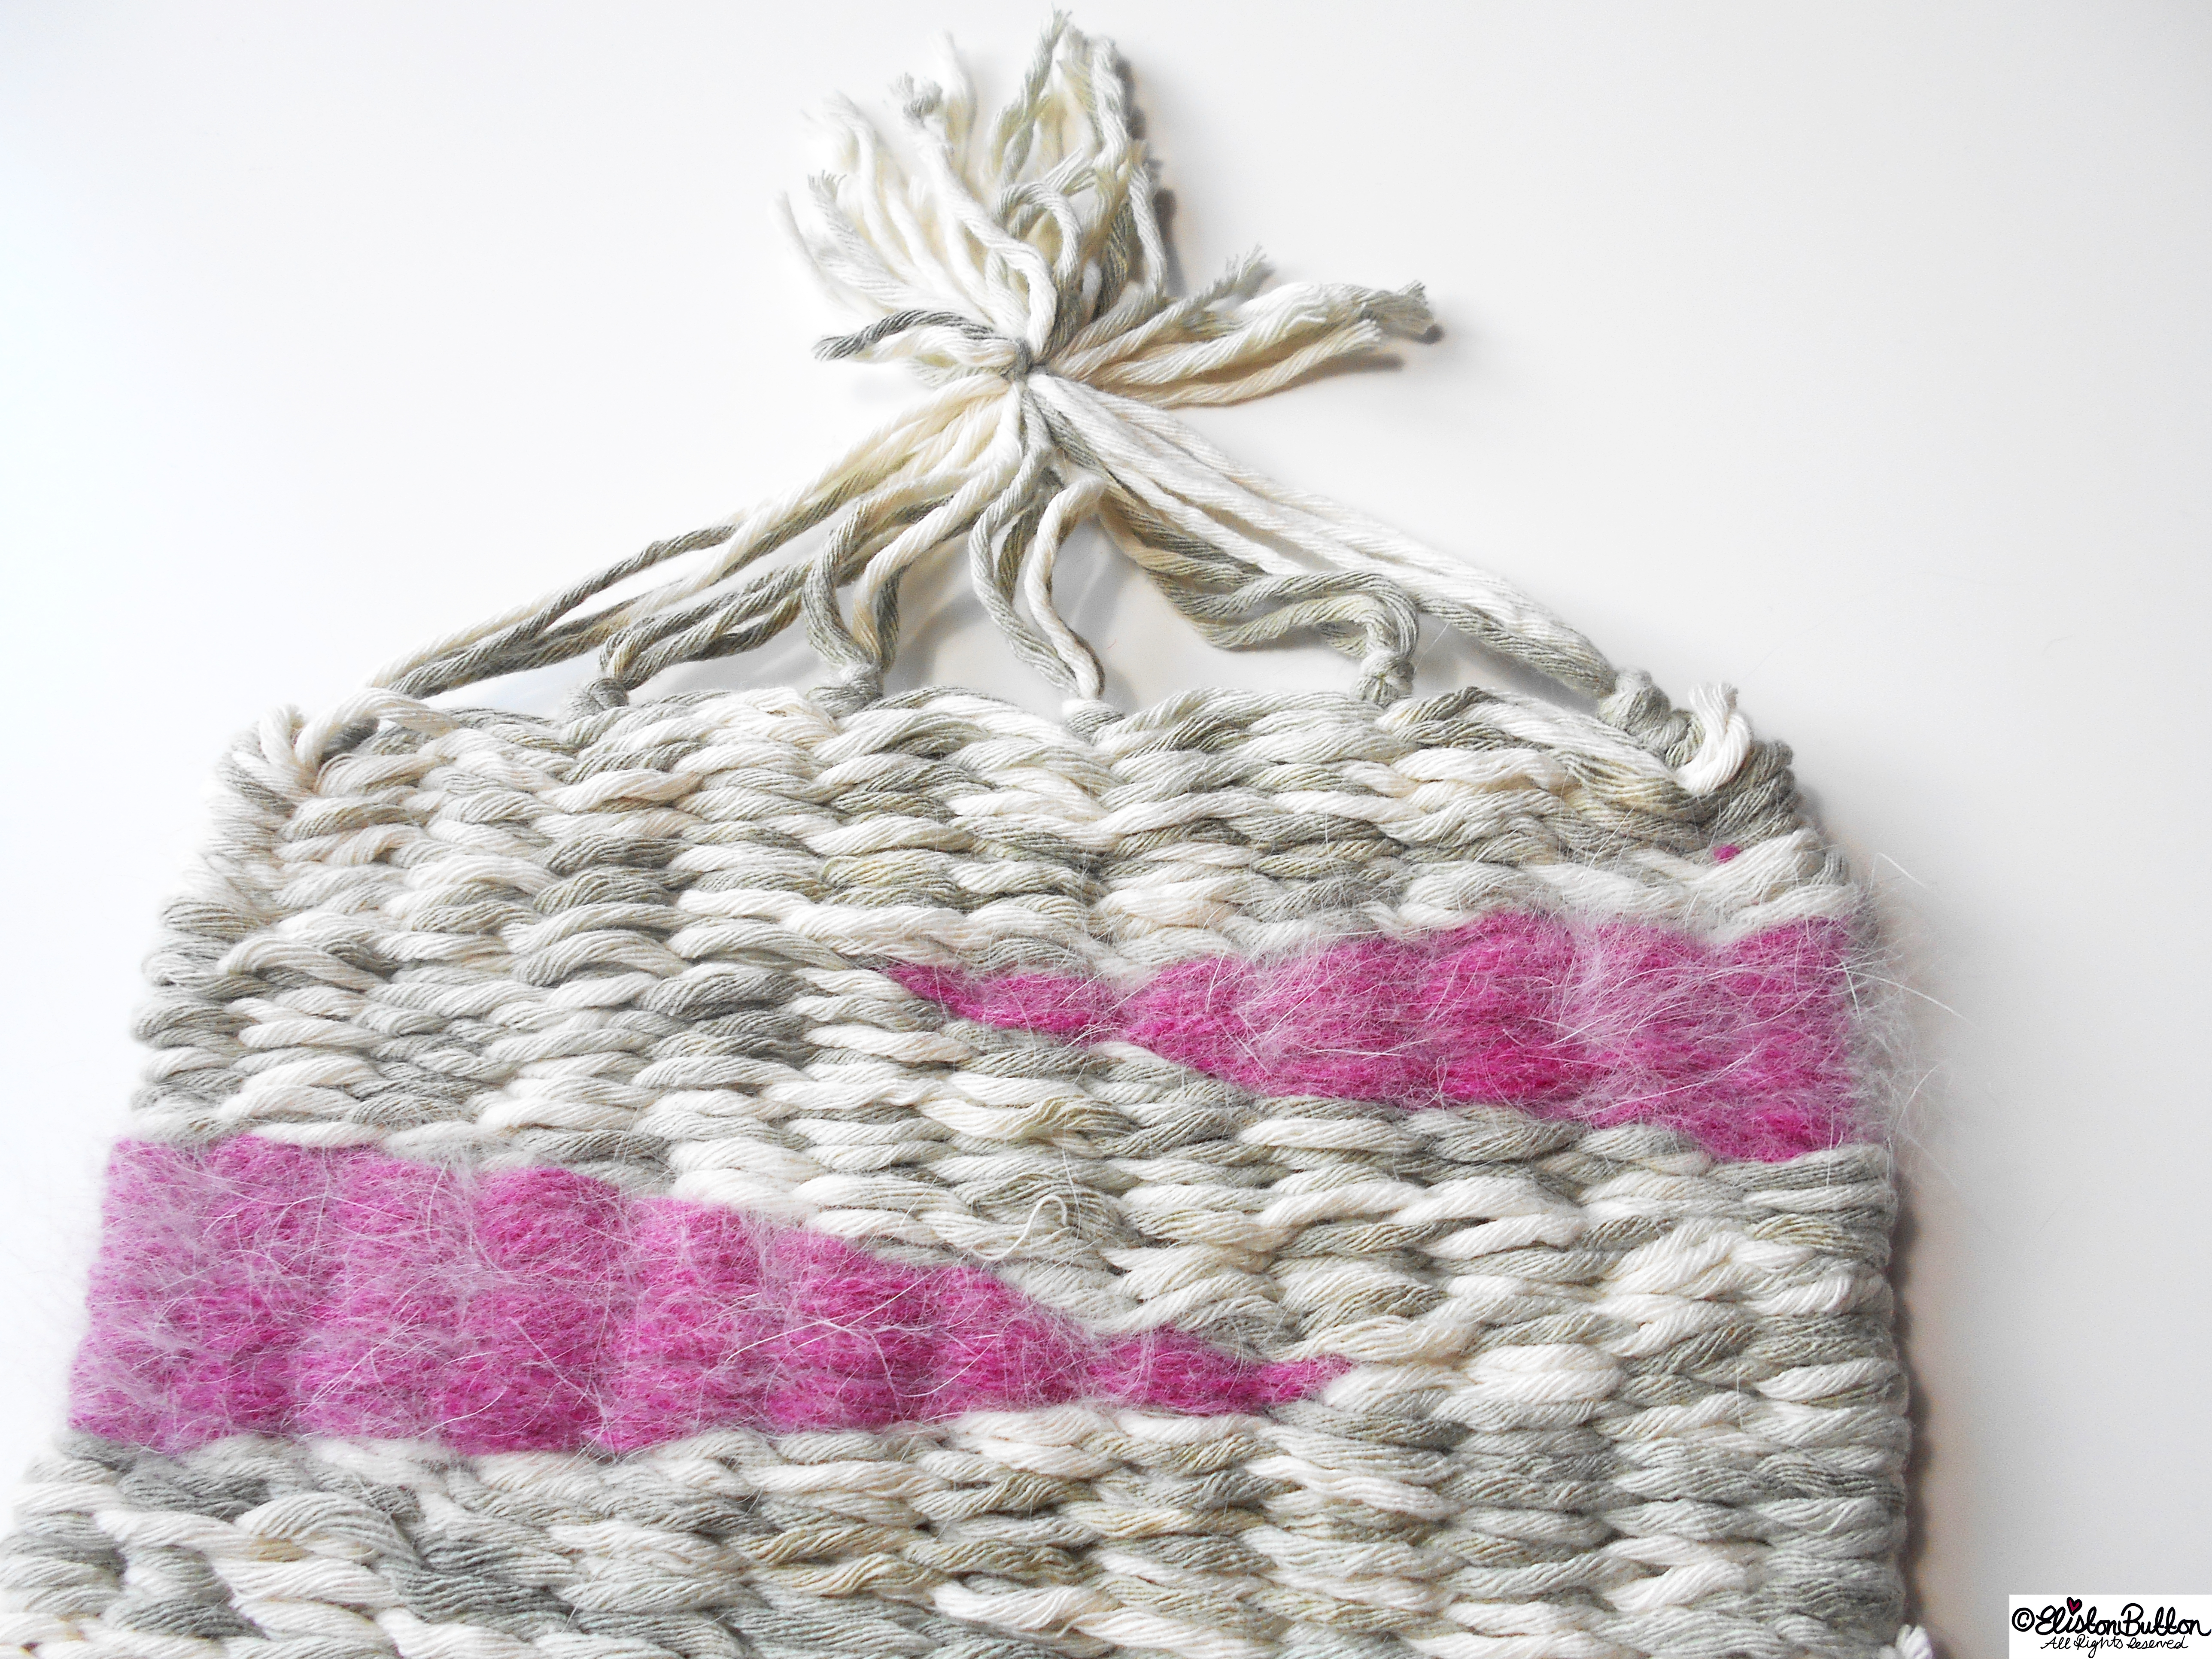 Grey and Pink Weaving with Tassels - Workspace Wednesday - Weave It To Me...at www.elistonbutton.com - Eliston Button - That Crafty Kid – Art, Design, Craft & Adventure.